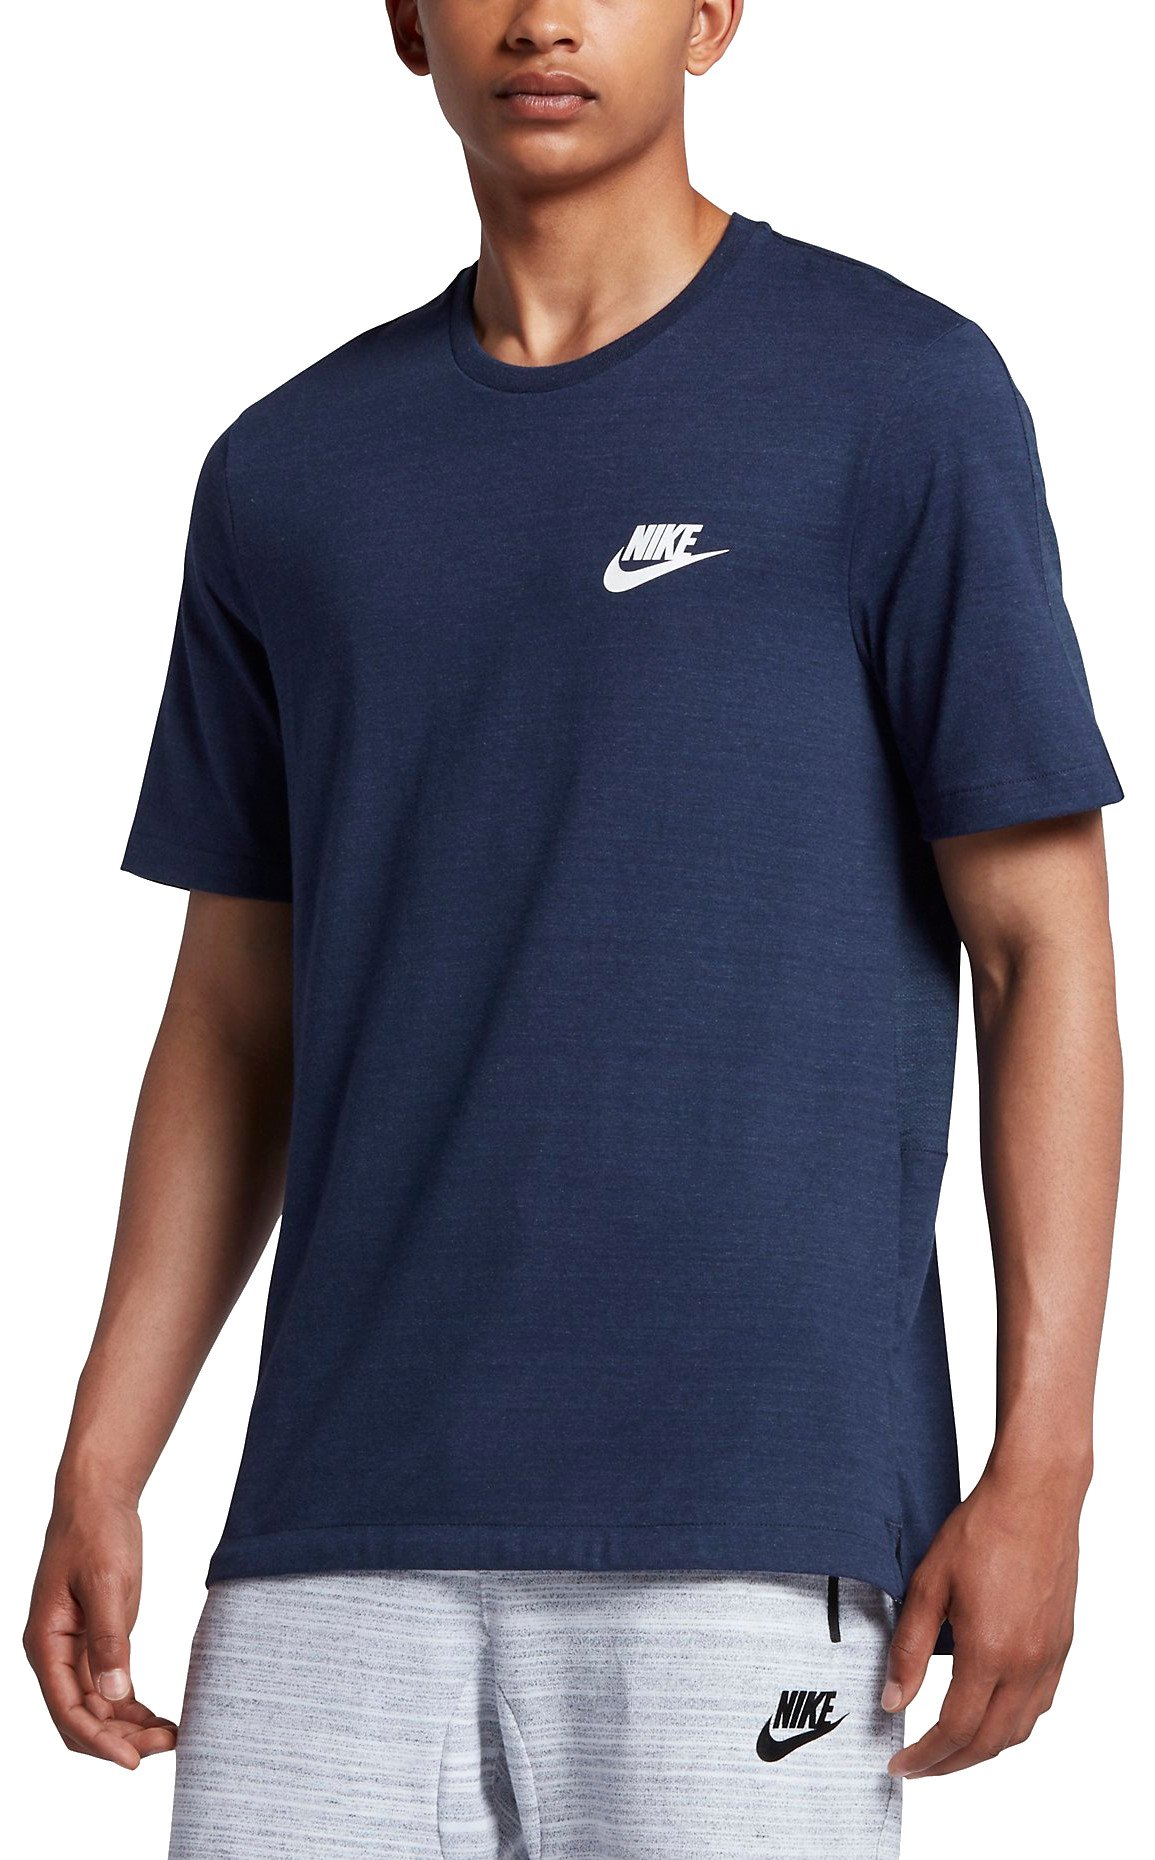 hot sale online bea05 484e9 T-shirt Nike M NSW AV15 TOP SS KNIT